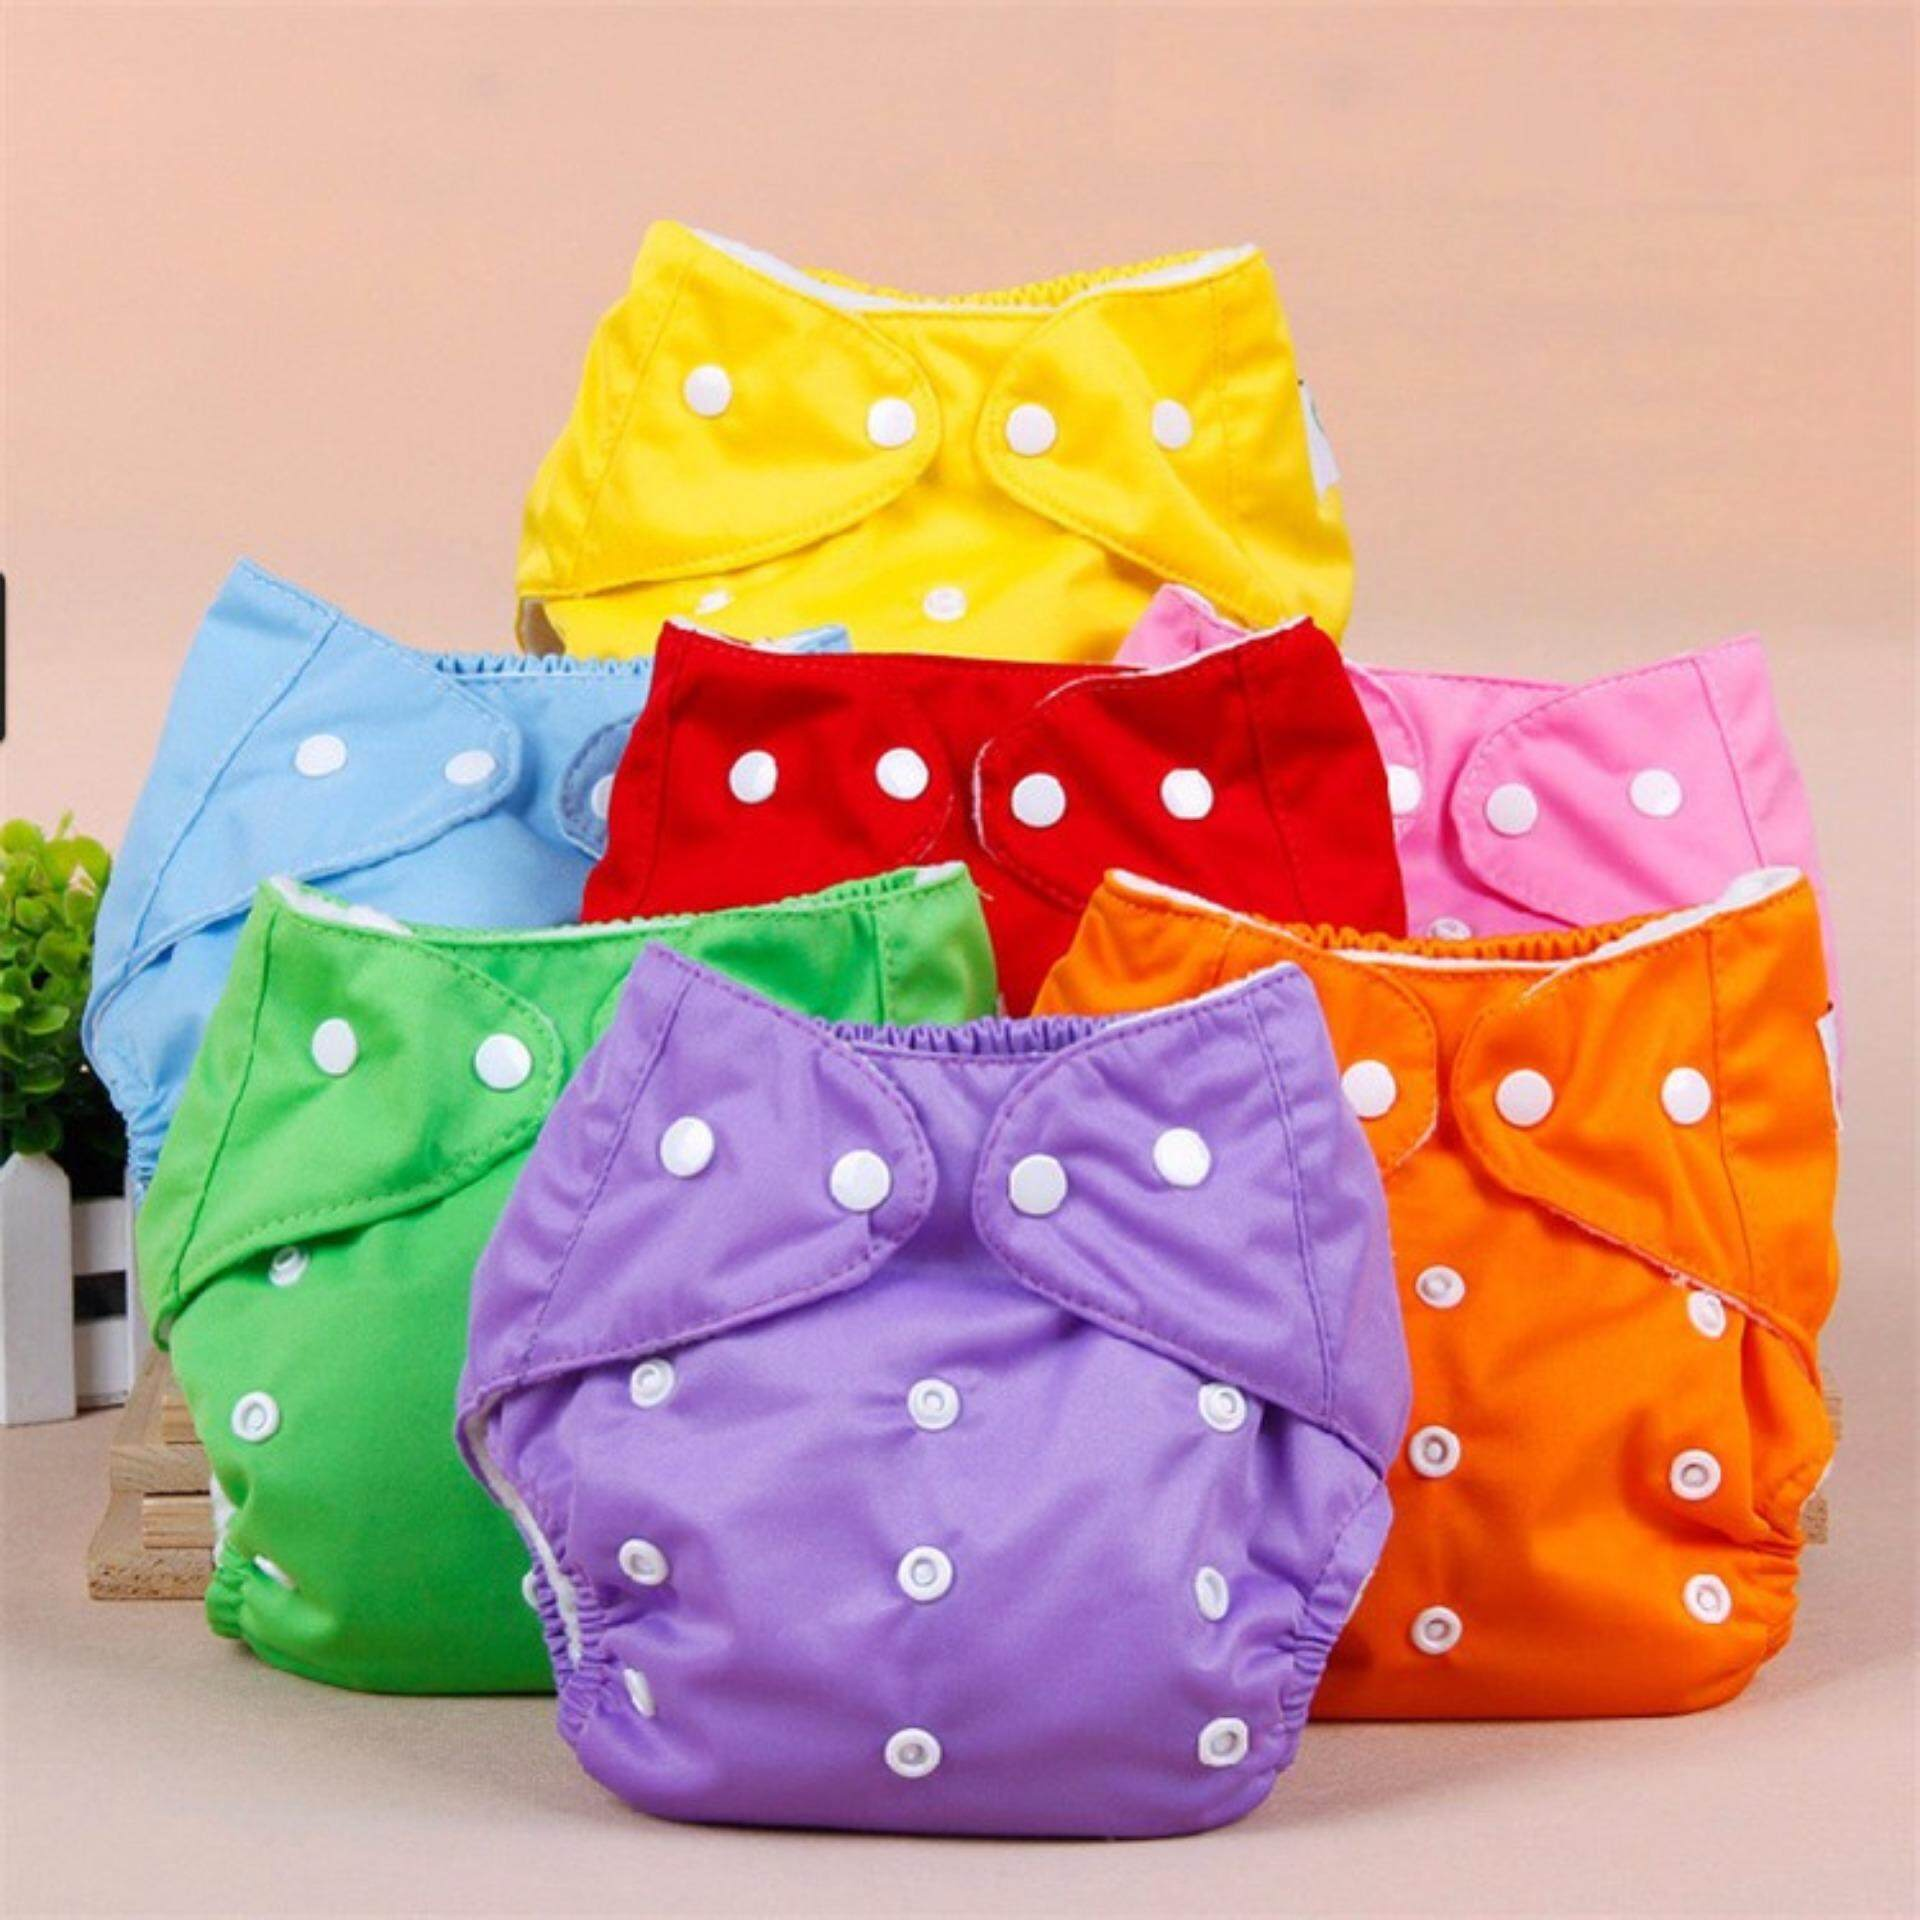 5 Pcs/lot + 5 Inserts Adjustable Cloth Diaper Baby Newborn Washable And Reusable Nappies By Fripershop.